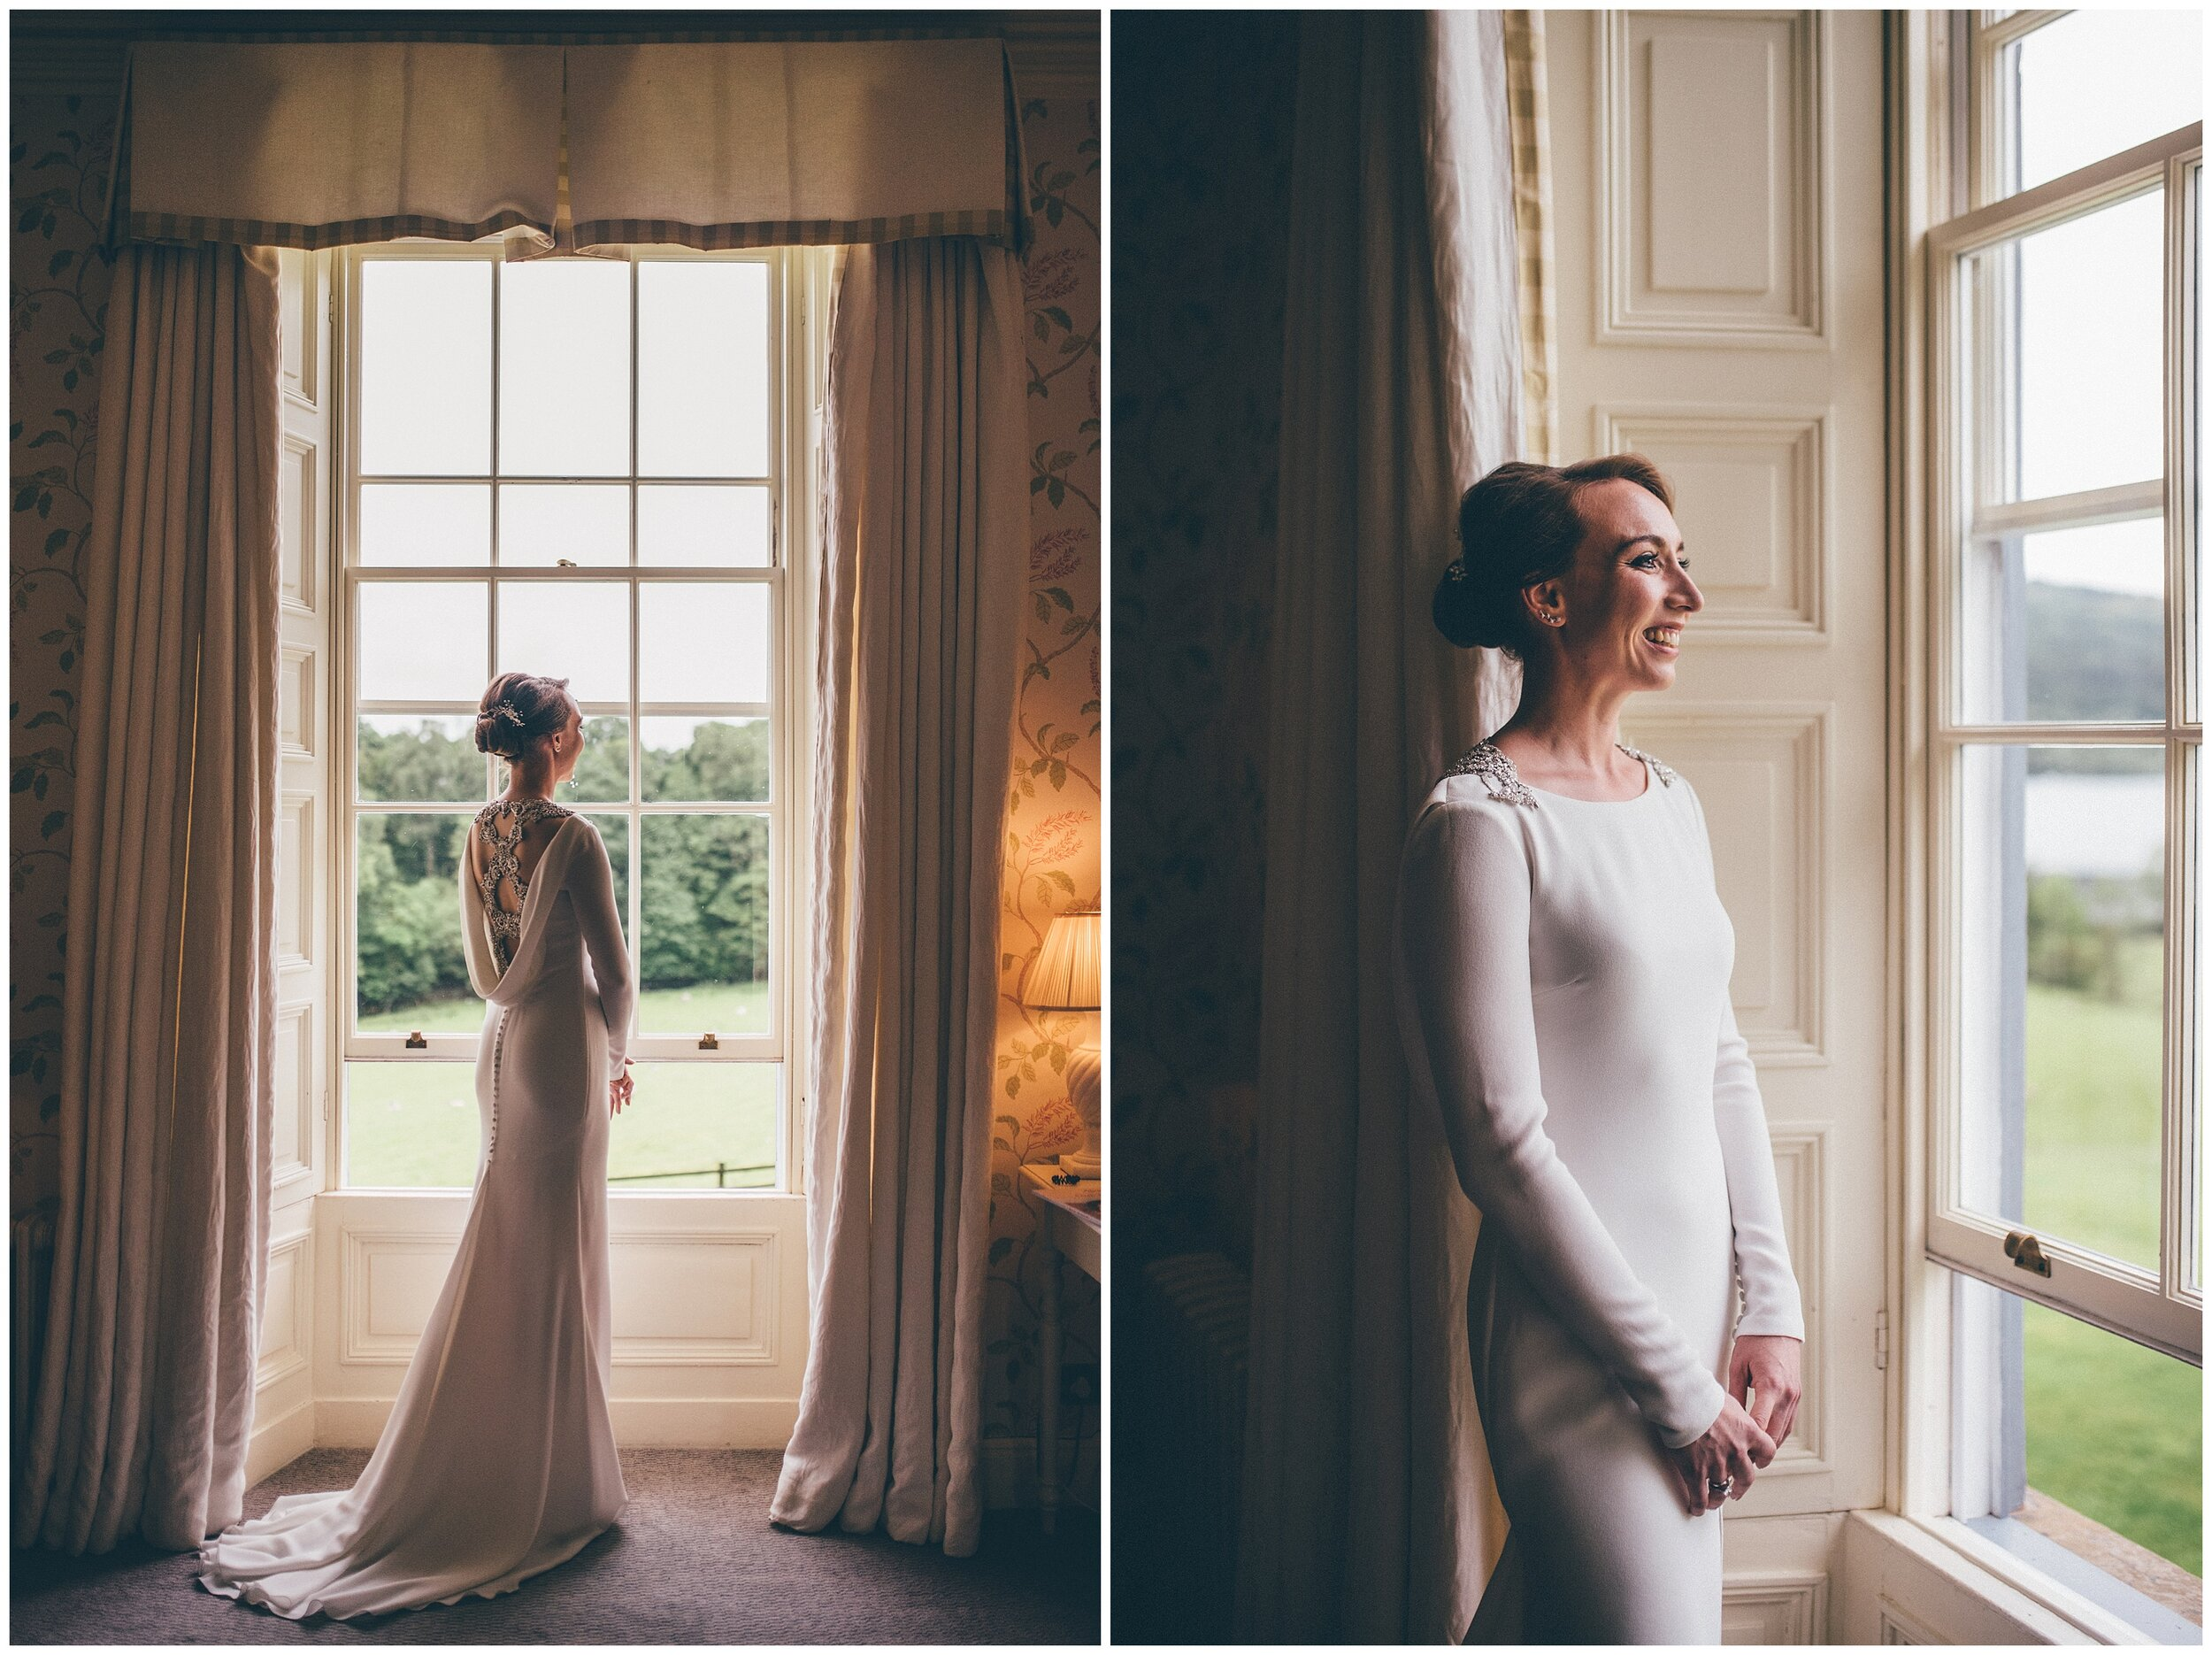 Stunning bride in her Pronovias wedding gown ahead of her wedding at Siverholme Manor in the Lake District.